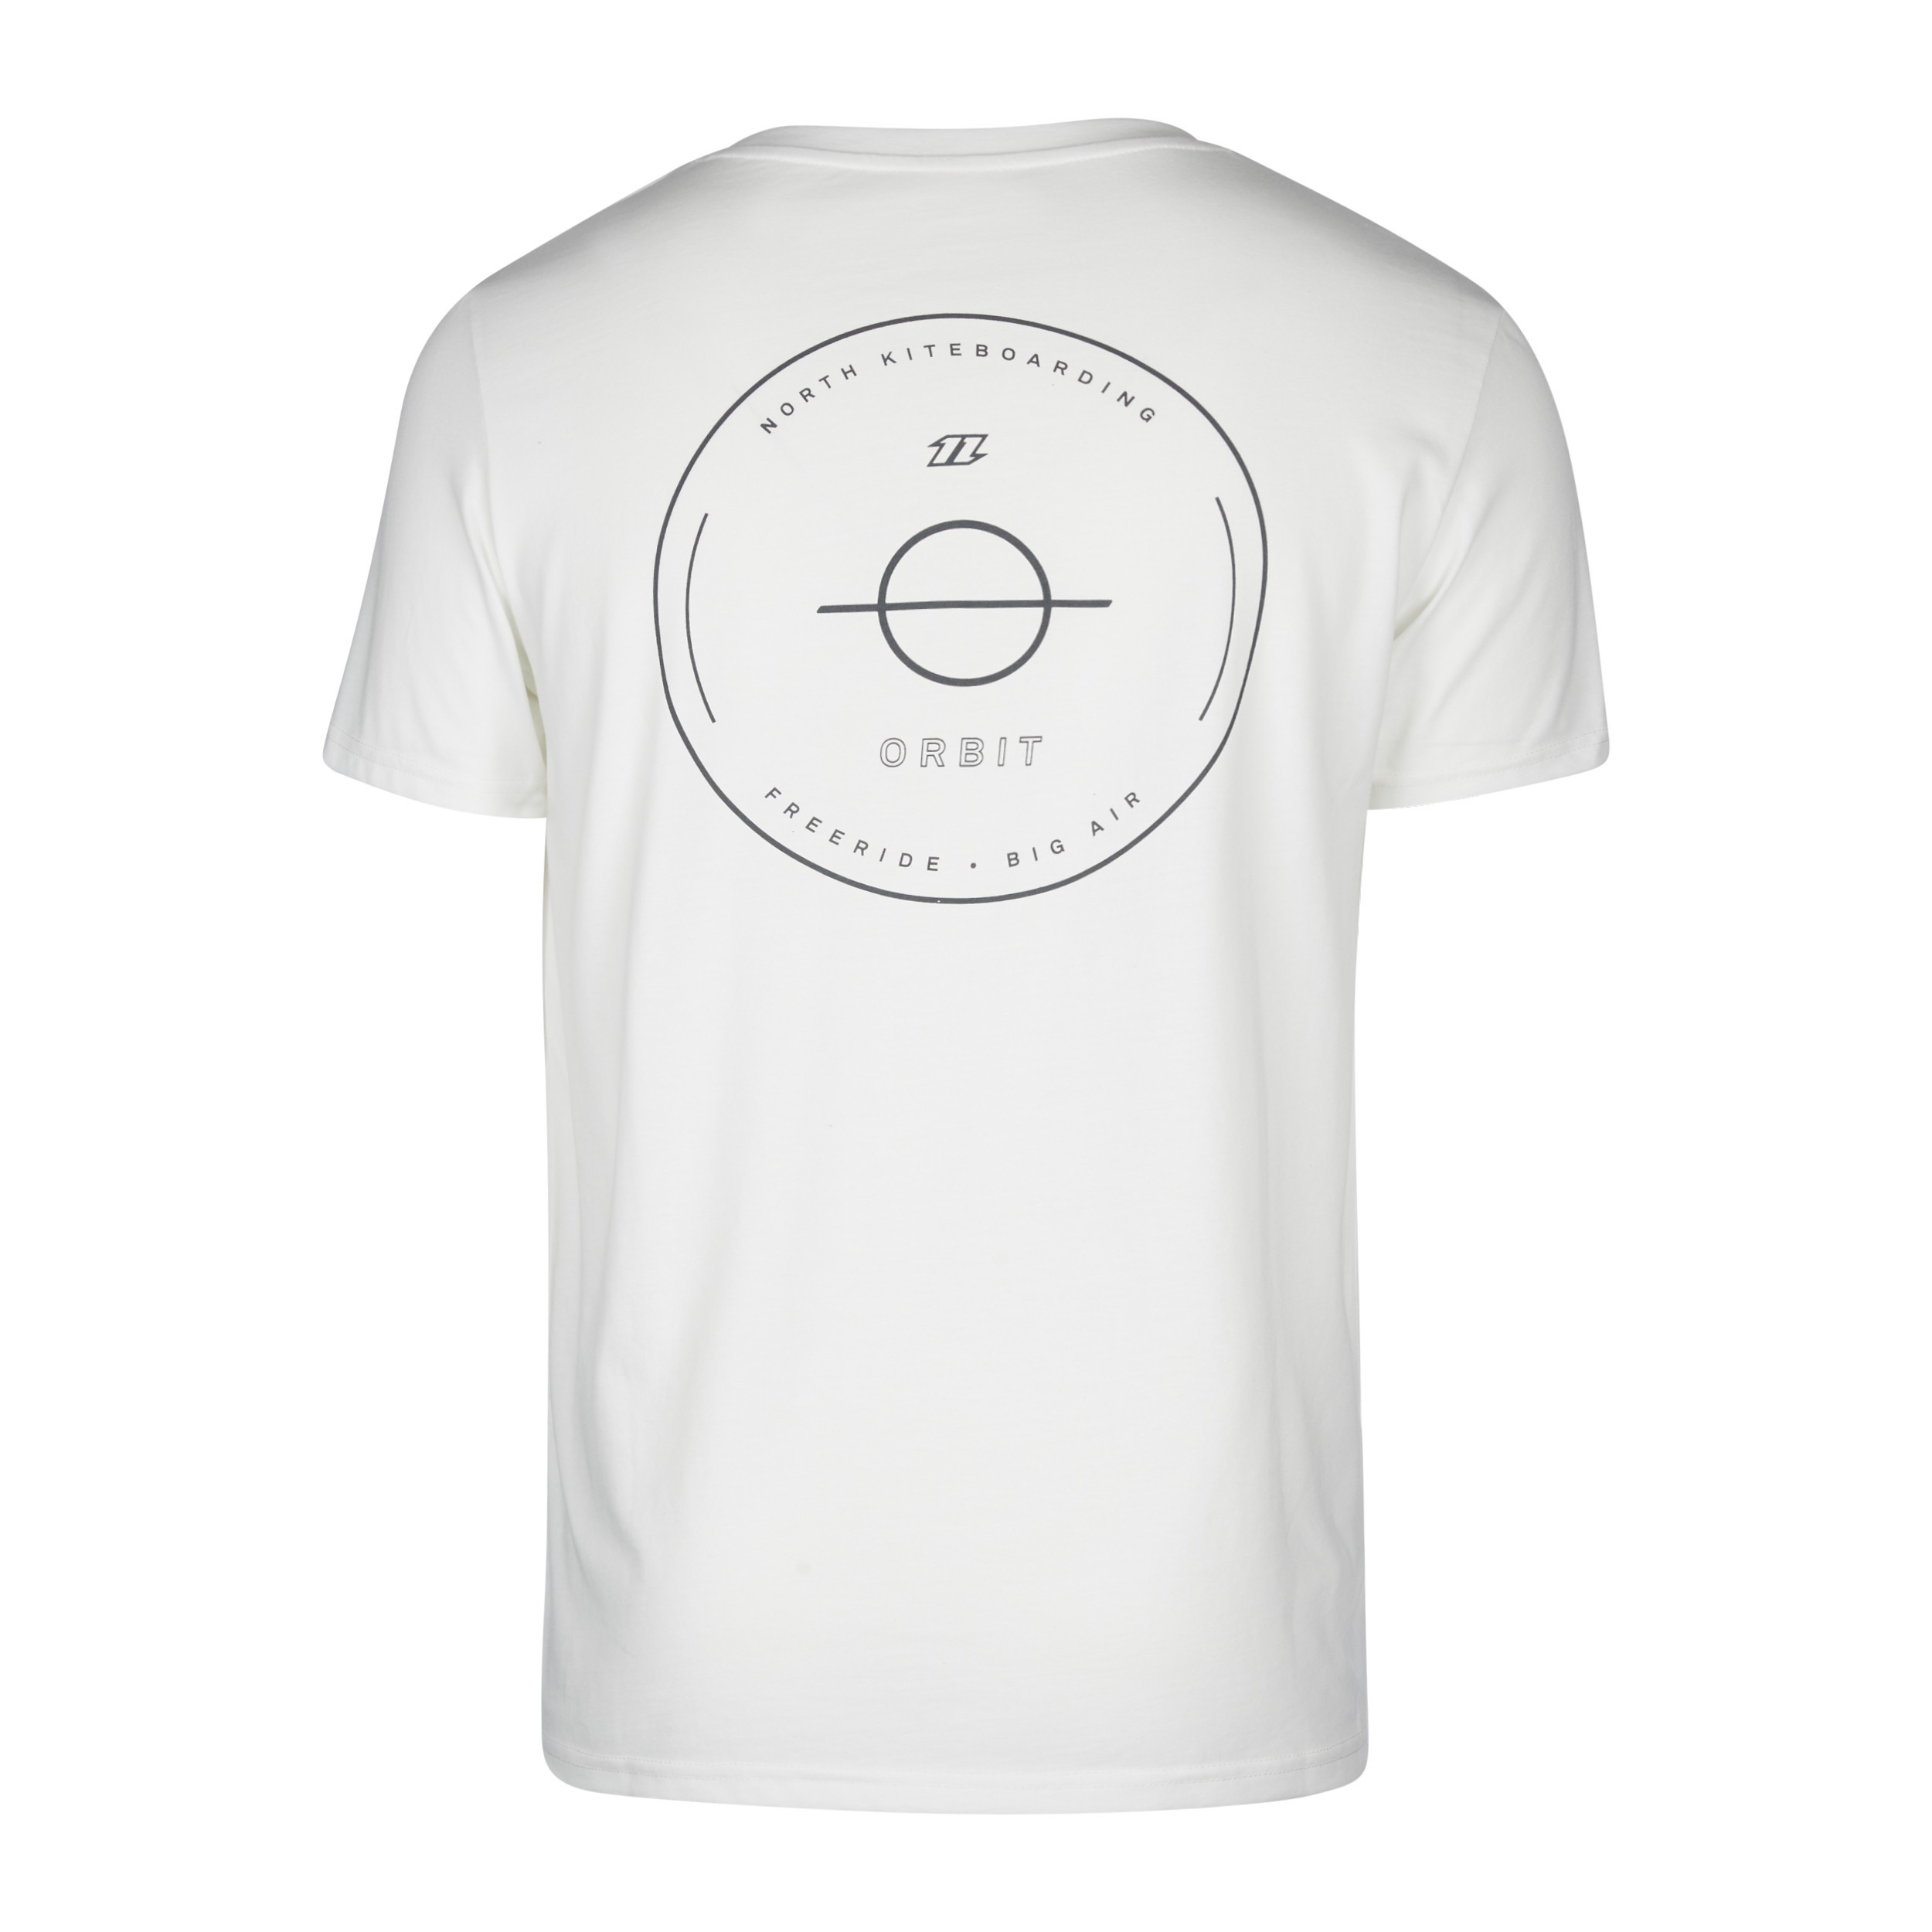 North Kiteboarding Orbit Tee Shirt